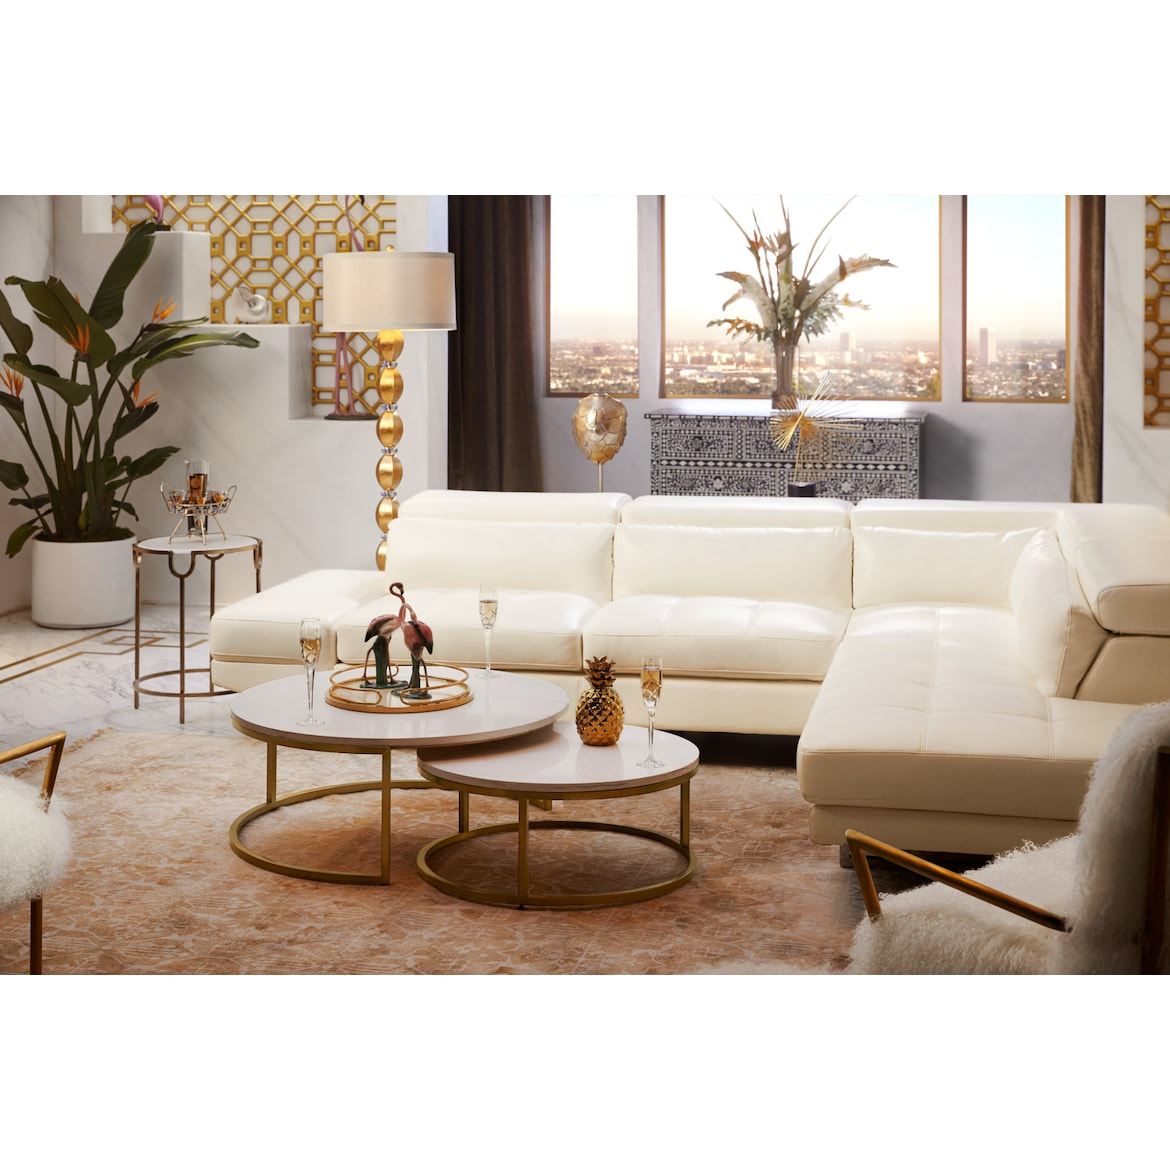 Wondrous Torino 2 Piece Sectional With Chaise Andrewgaddart Wooden Chair Designs For Living Room Andrewgaddartcom